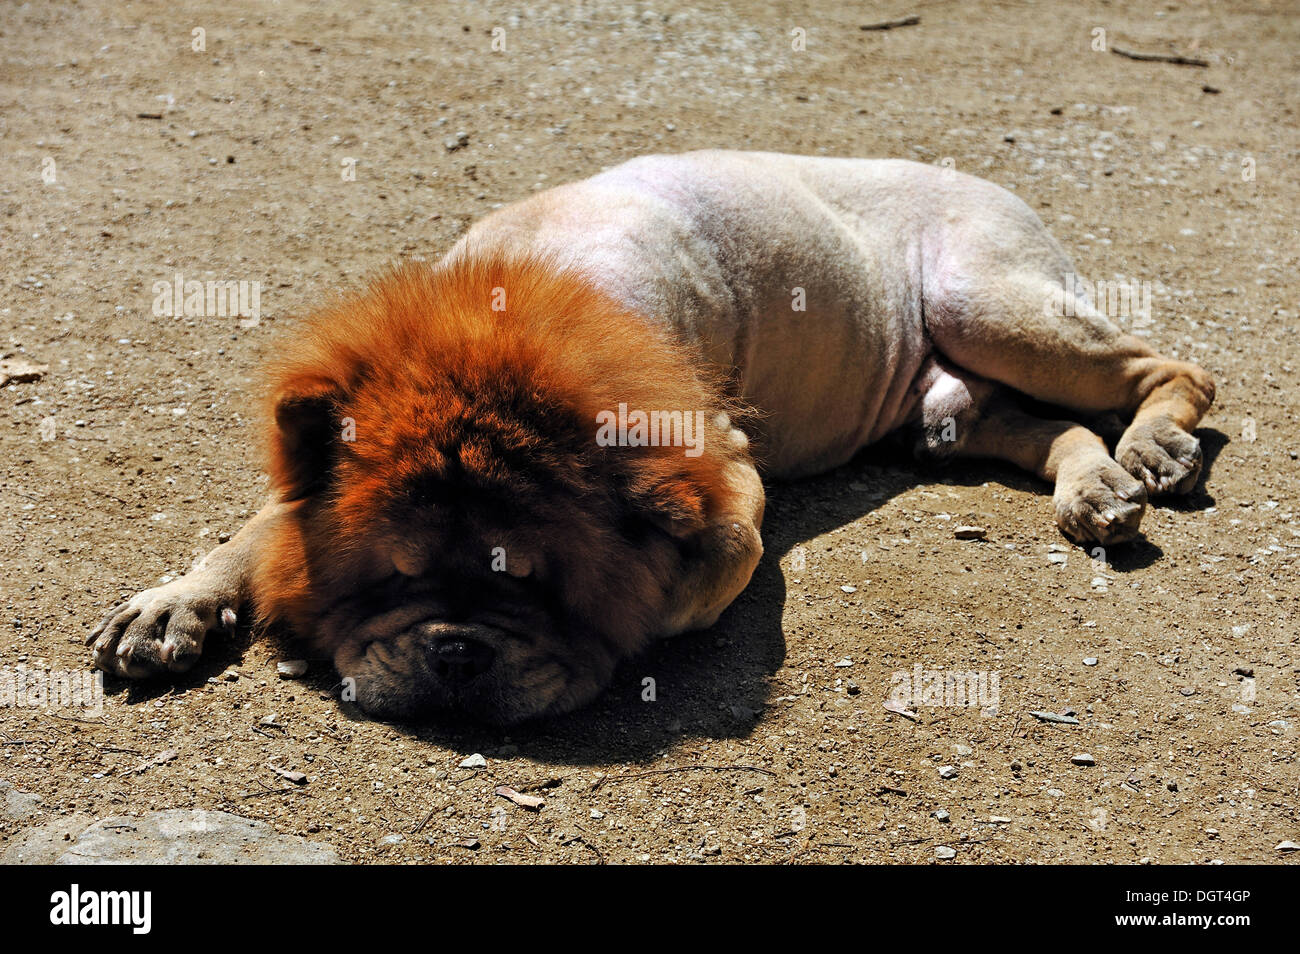 Clipped Chow-Chow sleeping on a dirt road in hot weather, castle gardens, Erlangen, Middle Franconia, Bavaria - Stock Image